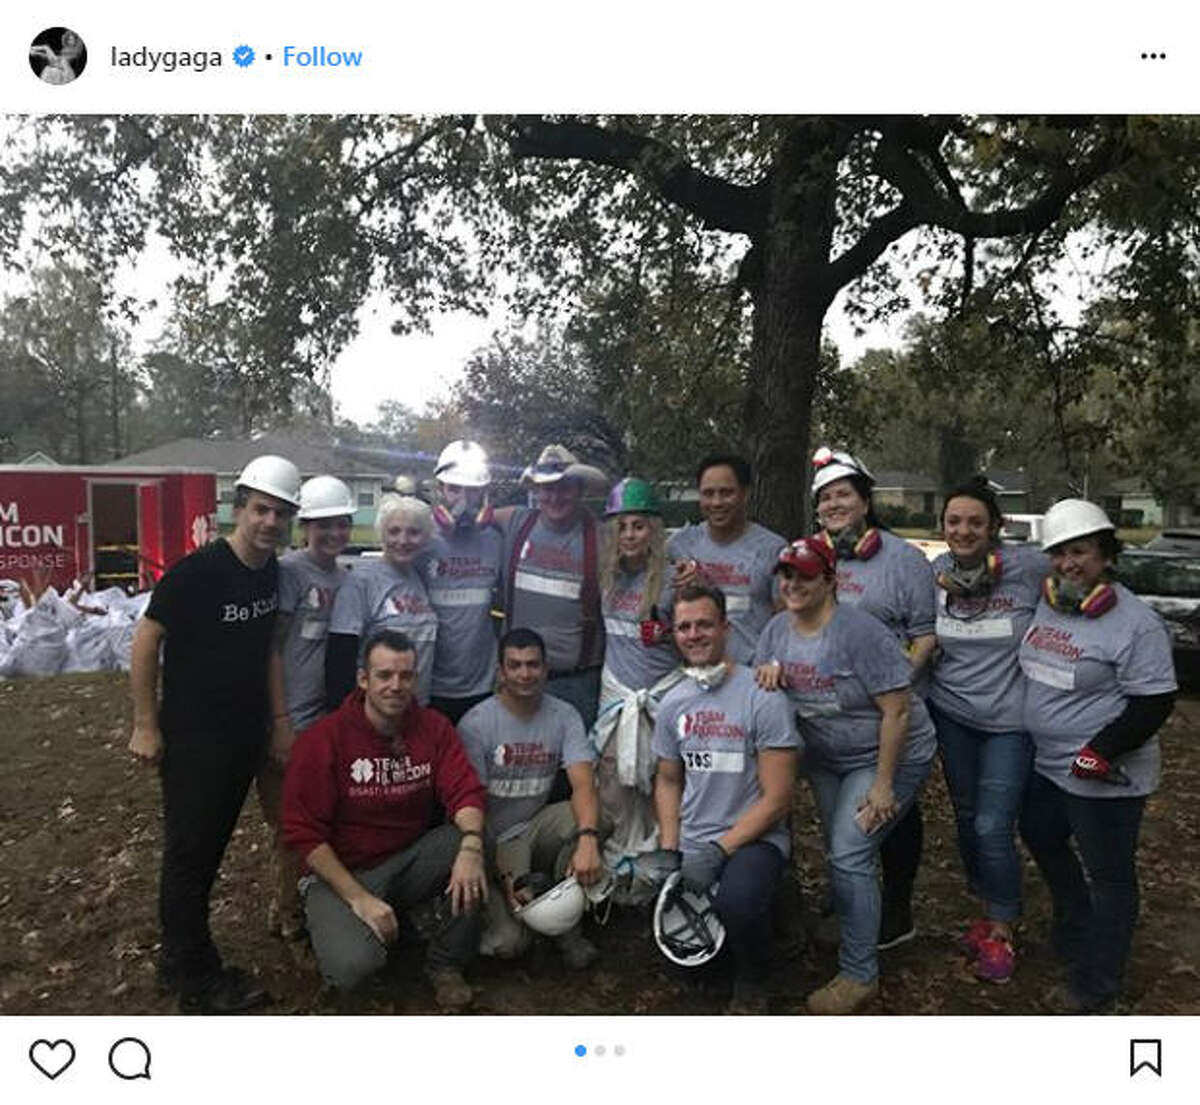 Musician Lady Gaga rolled into Houston on Sunday as a part of her Joanne World Tour, but before she took to the stage, she went out to a local Houstonian's house to help with Hurricane Harvey relief.